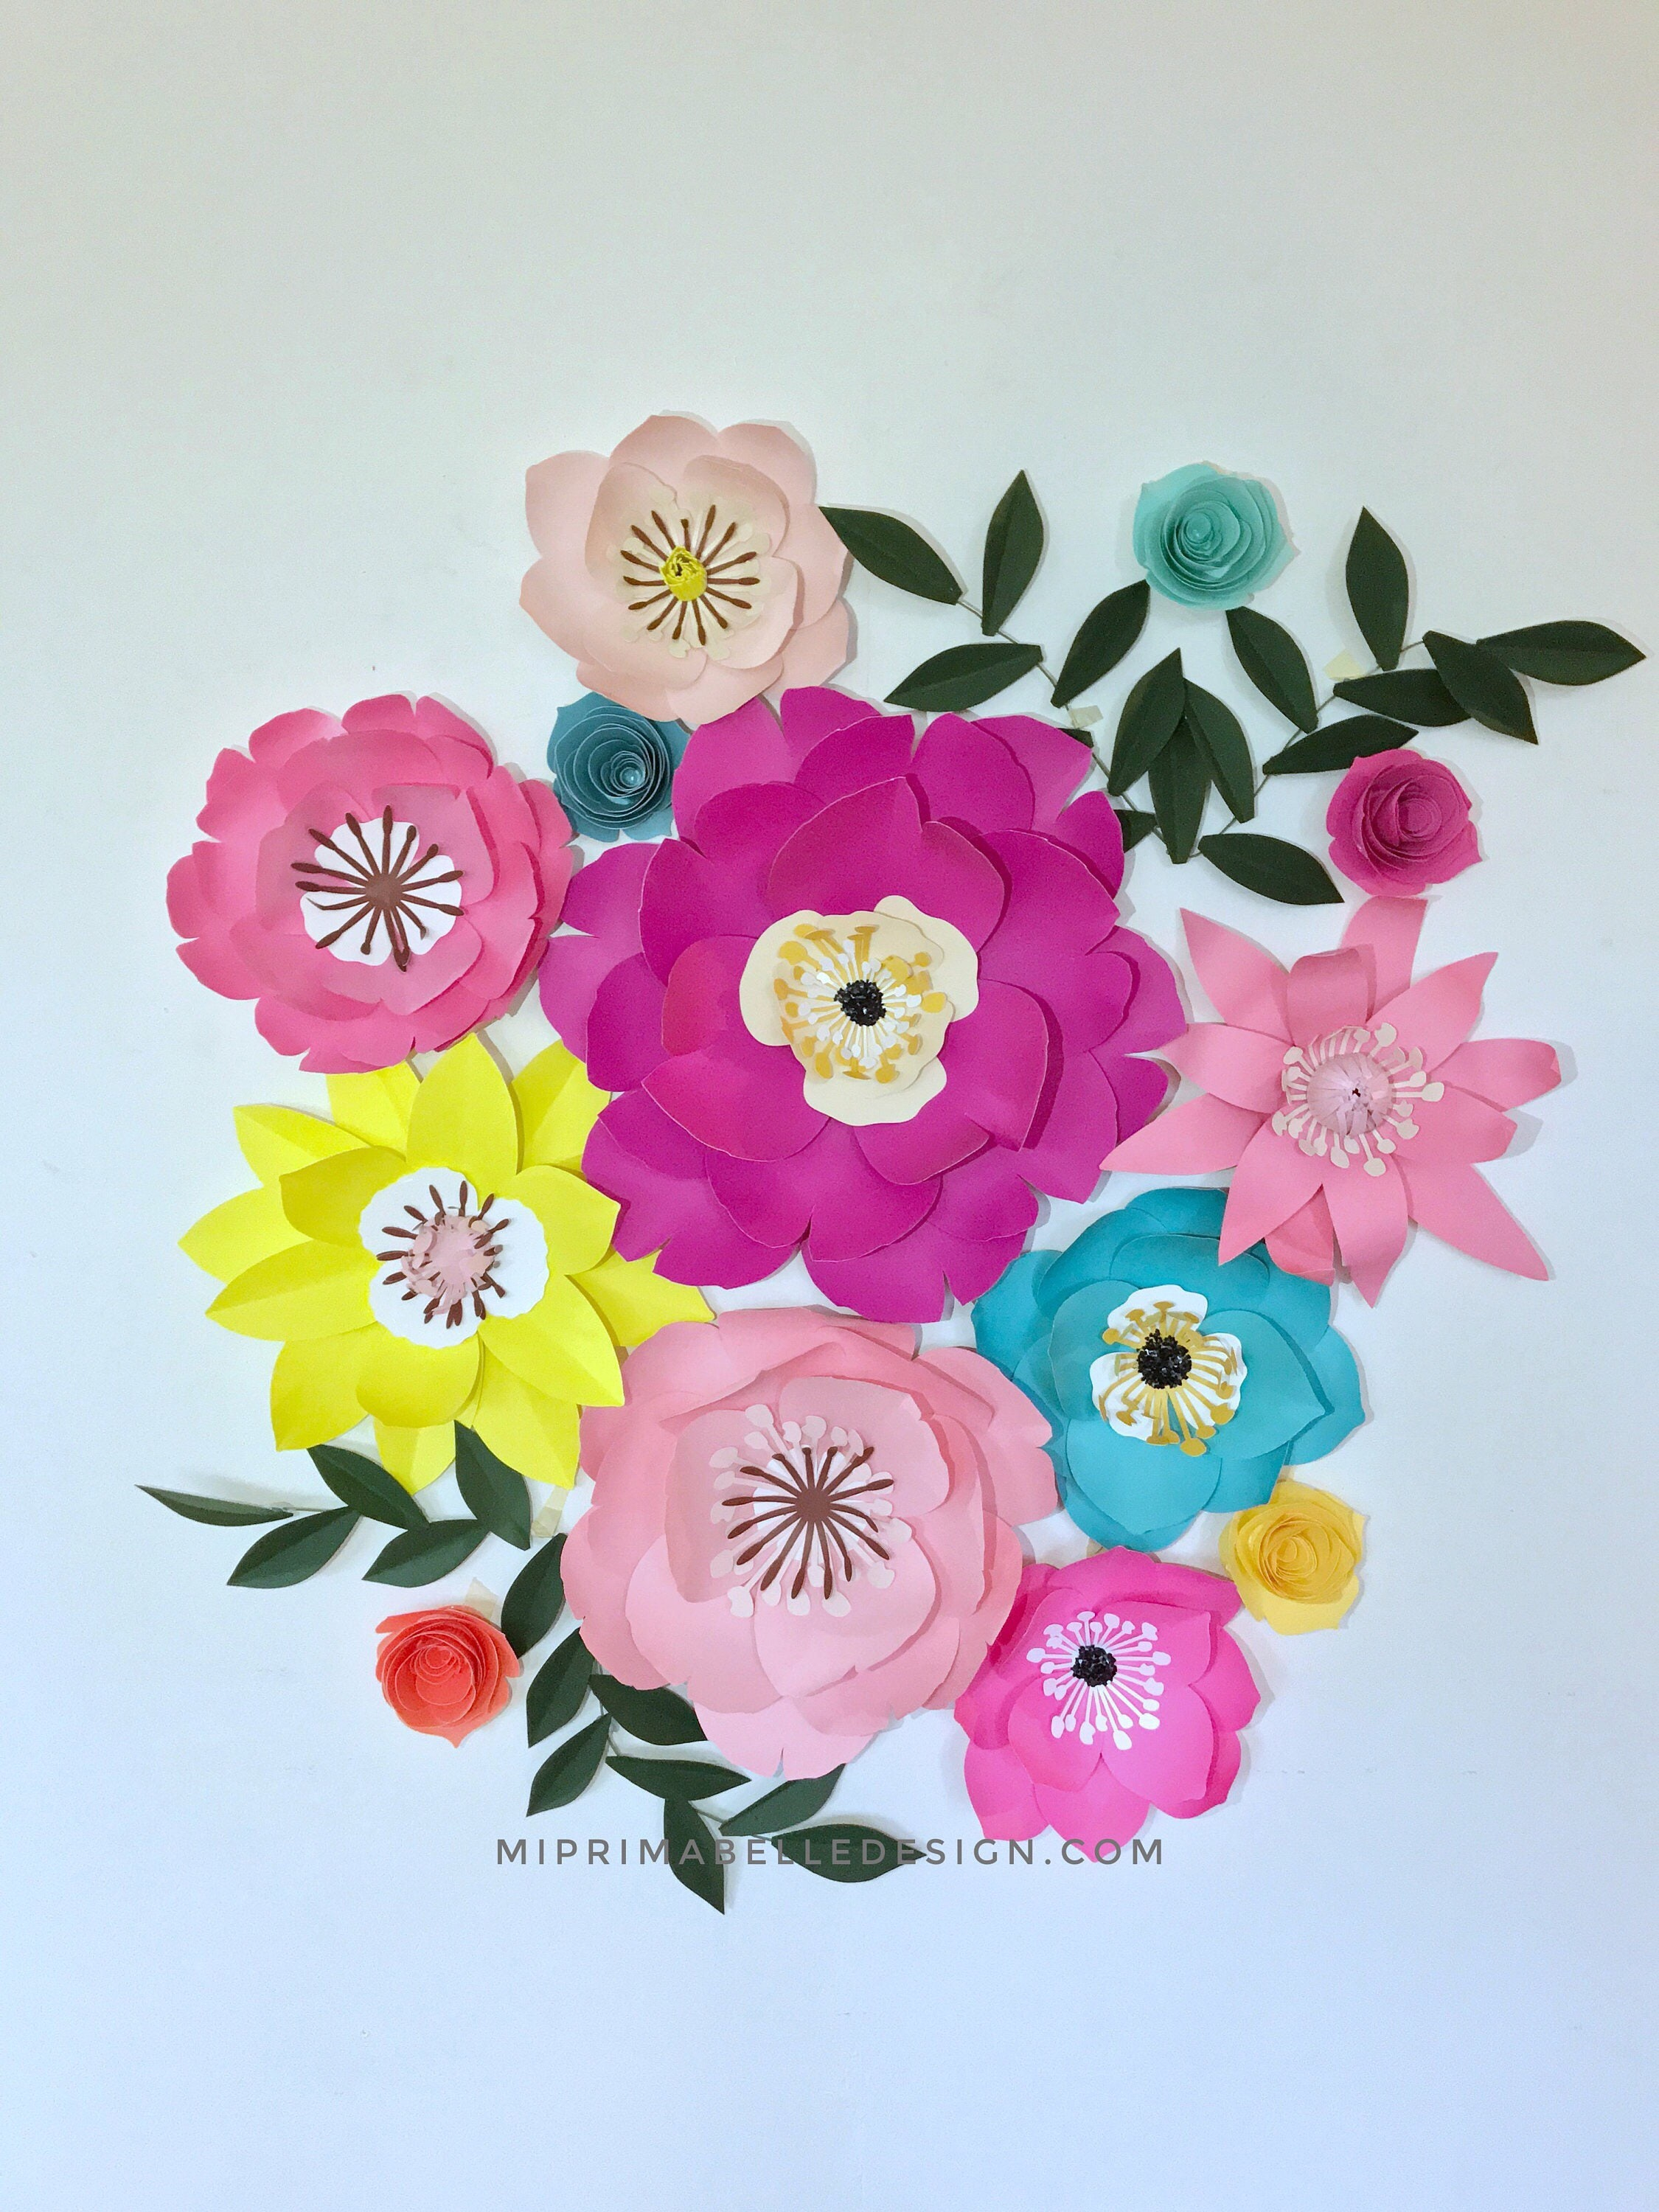 Nursery decor paper flower wall decor new mom gift magenta decor ...